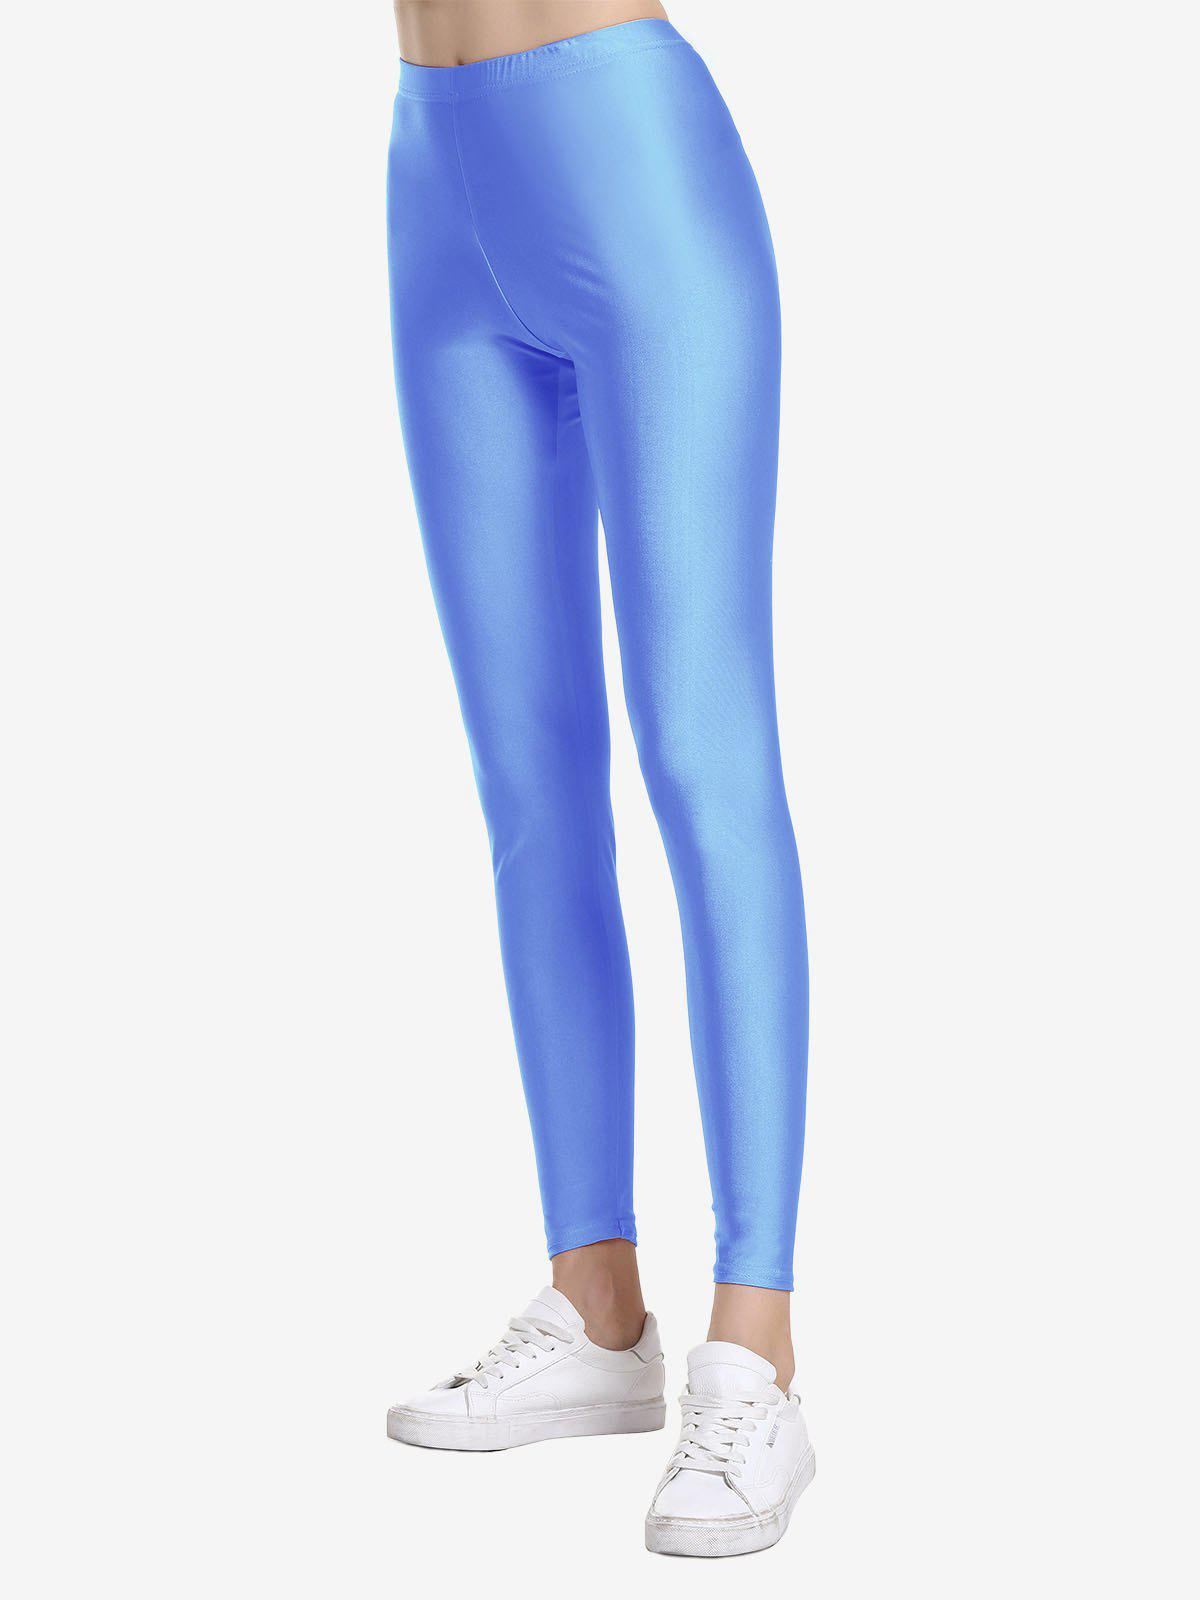 ZAN.STYLE High Waist Leggings фото